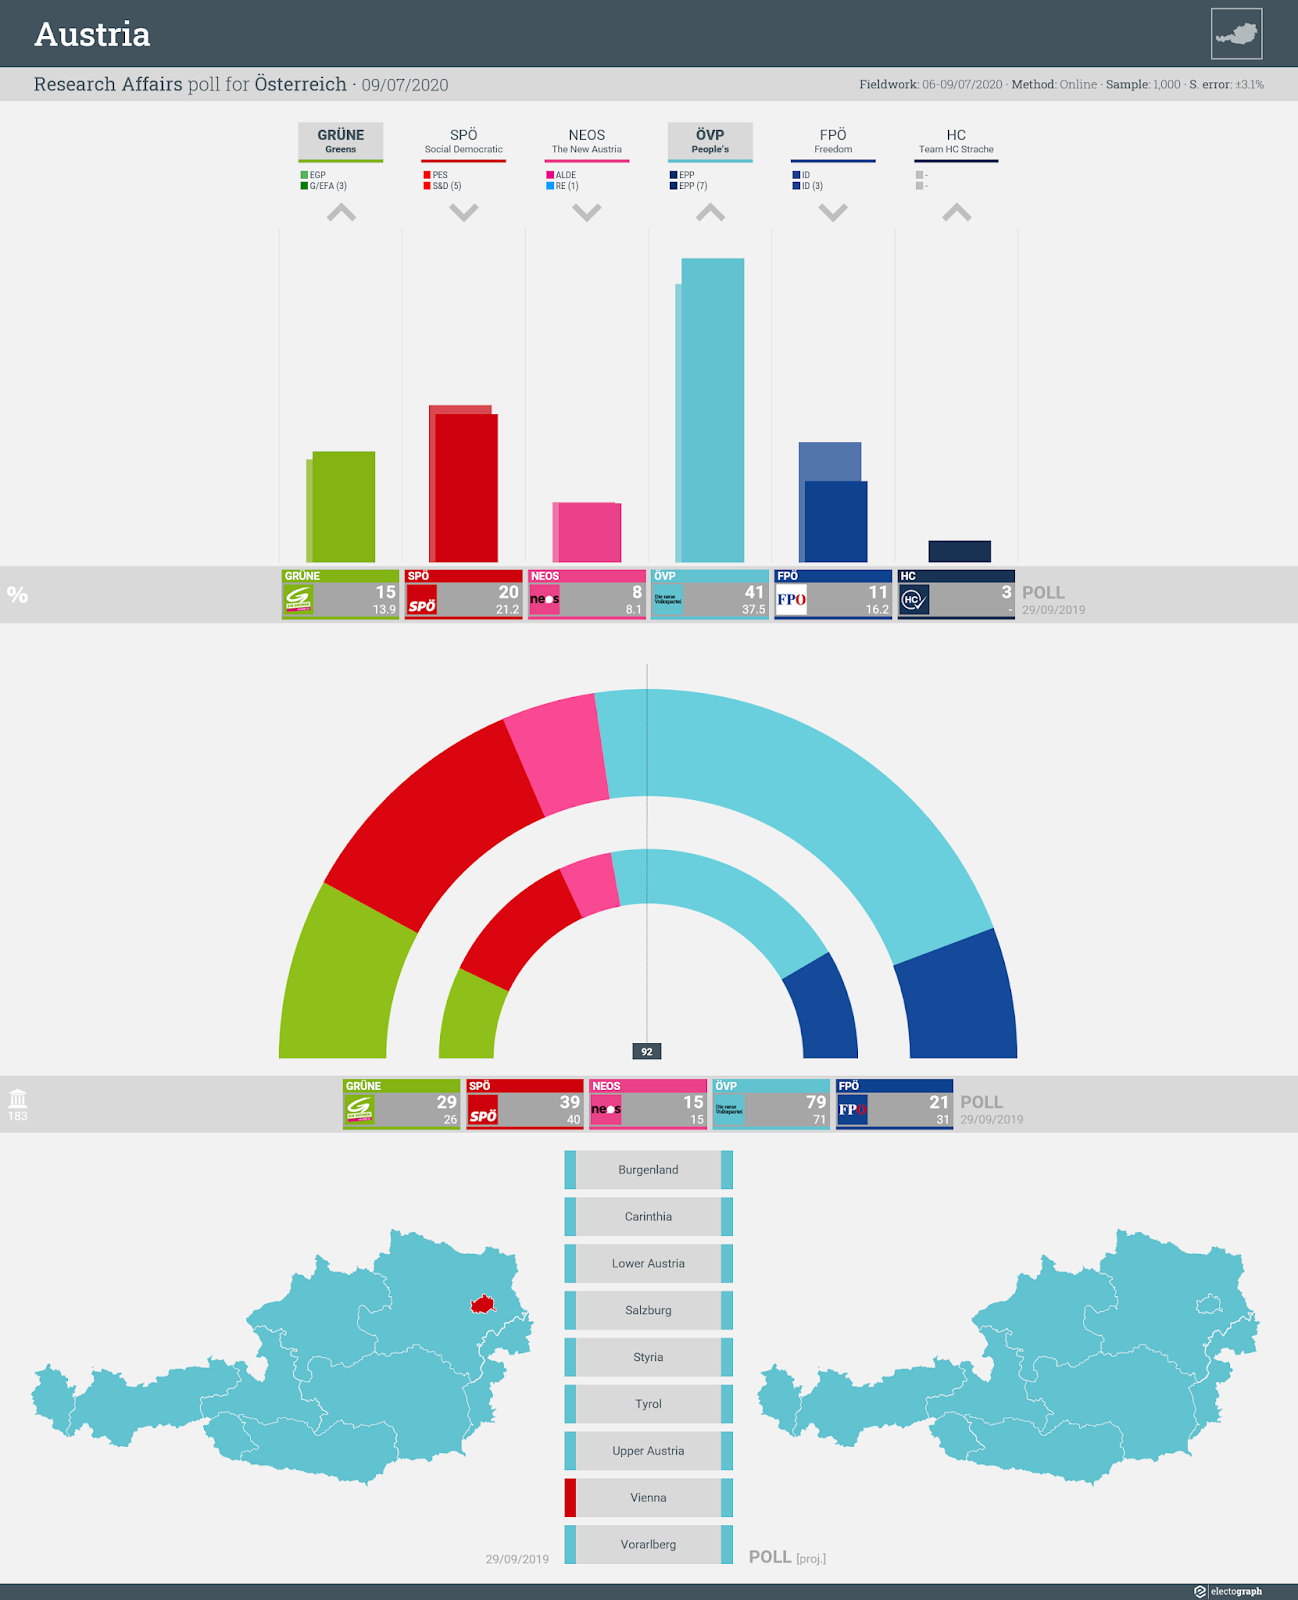 AUSTRIA: Research Affairs poll chart for Österreich, 9 July 2020